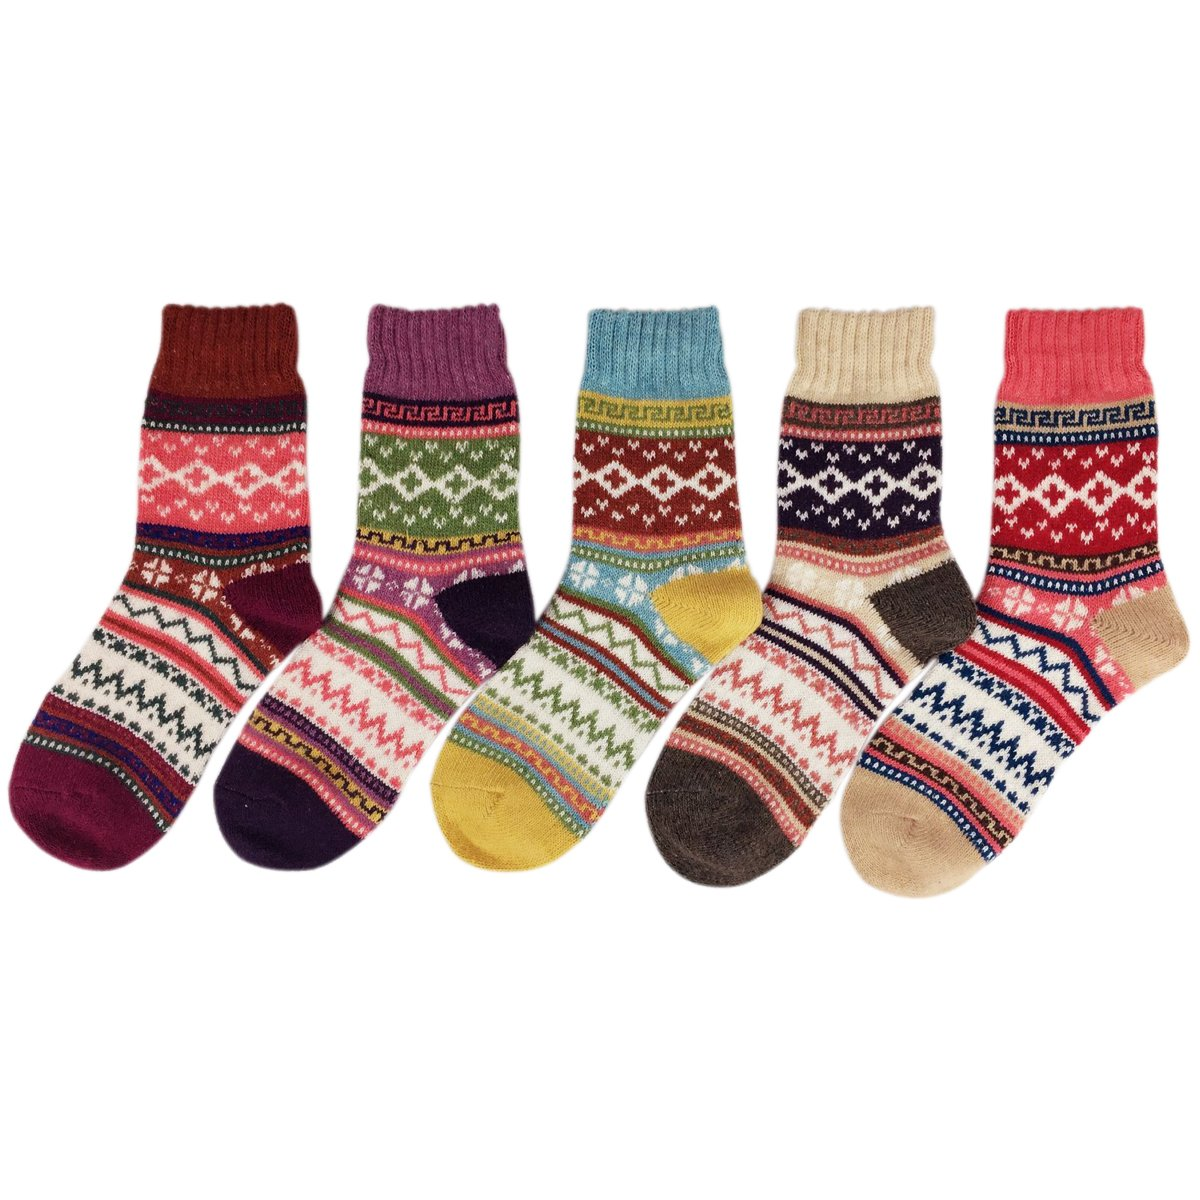 JOYEBUY 5 Pack Winter Fall Women Socks Vintage Style Cotton Knitting Wool Warm Crew Socks (One Size, Style 5) by JOYEBUY (Image #2)